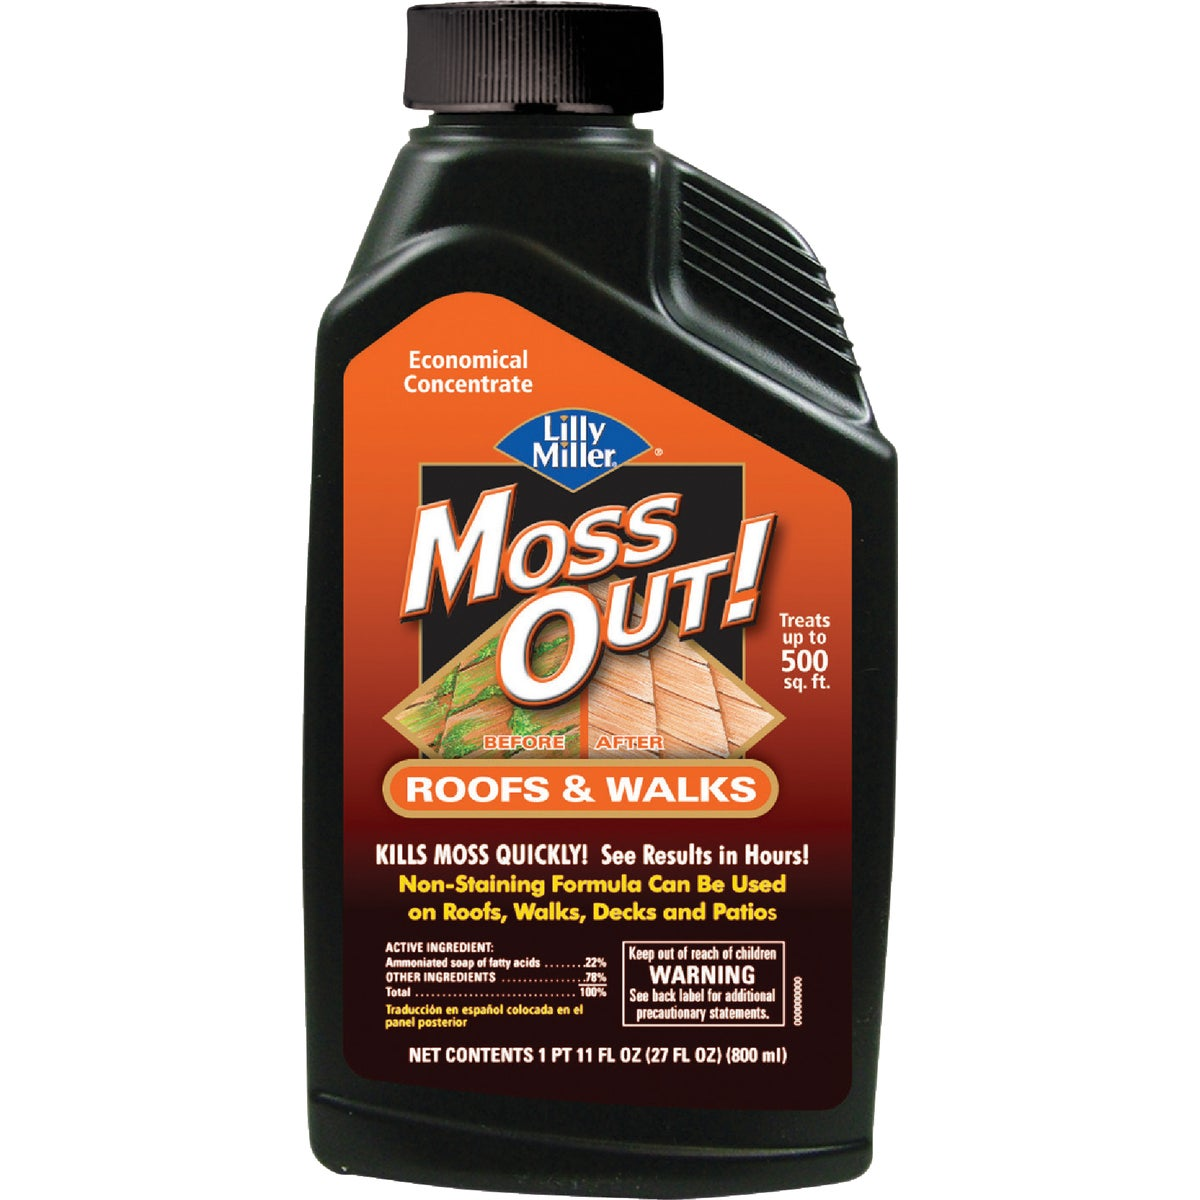 27OZ CONC MOSS CONTROL - 100503874 by Excel Marketing